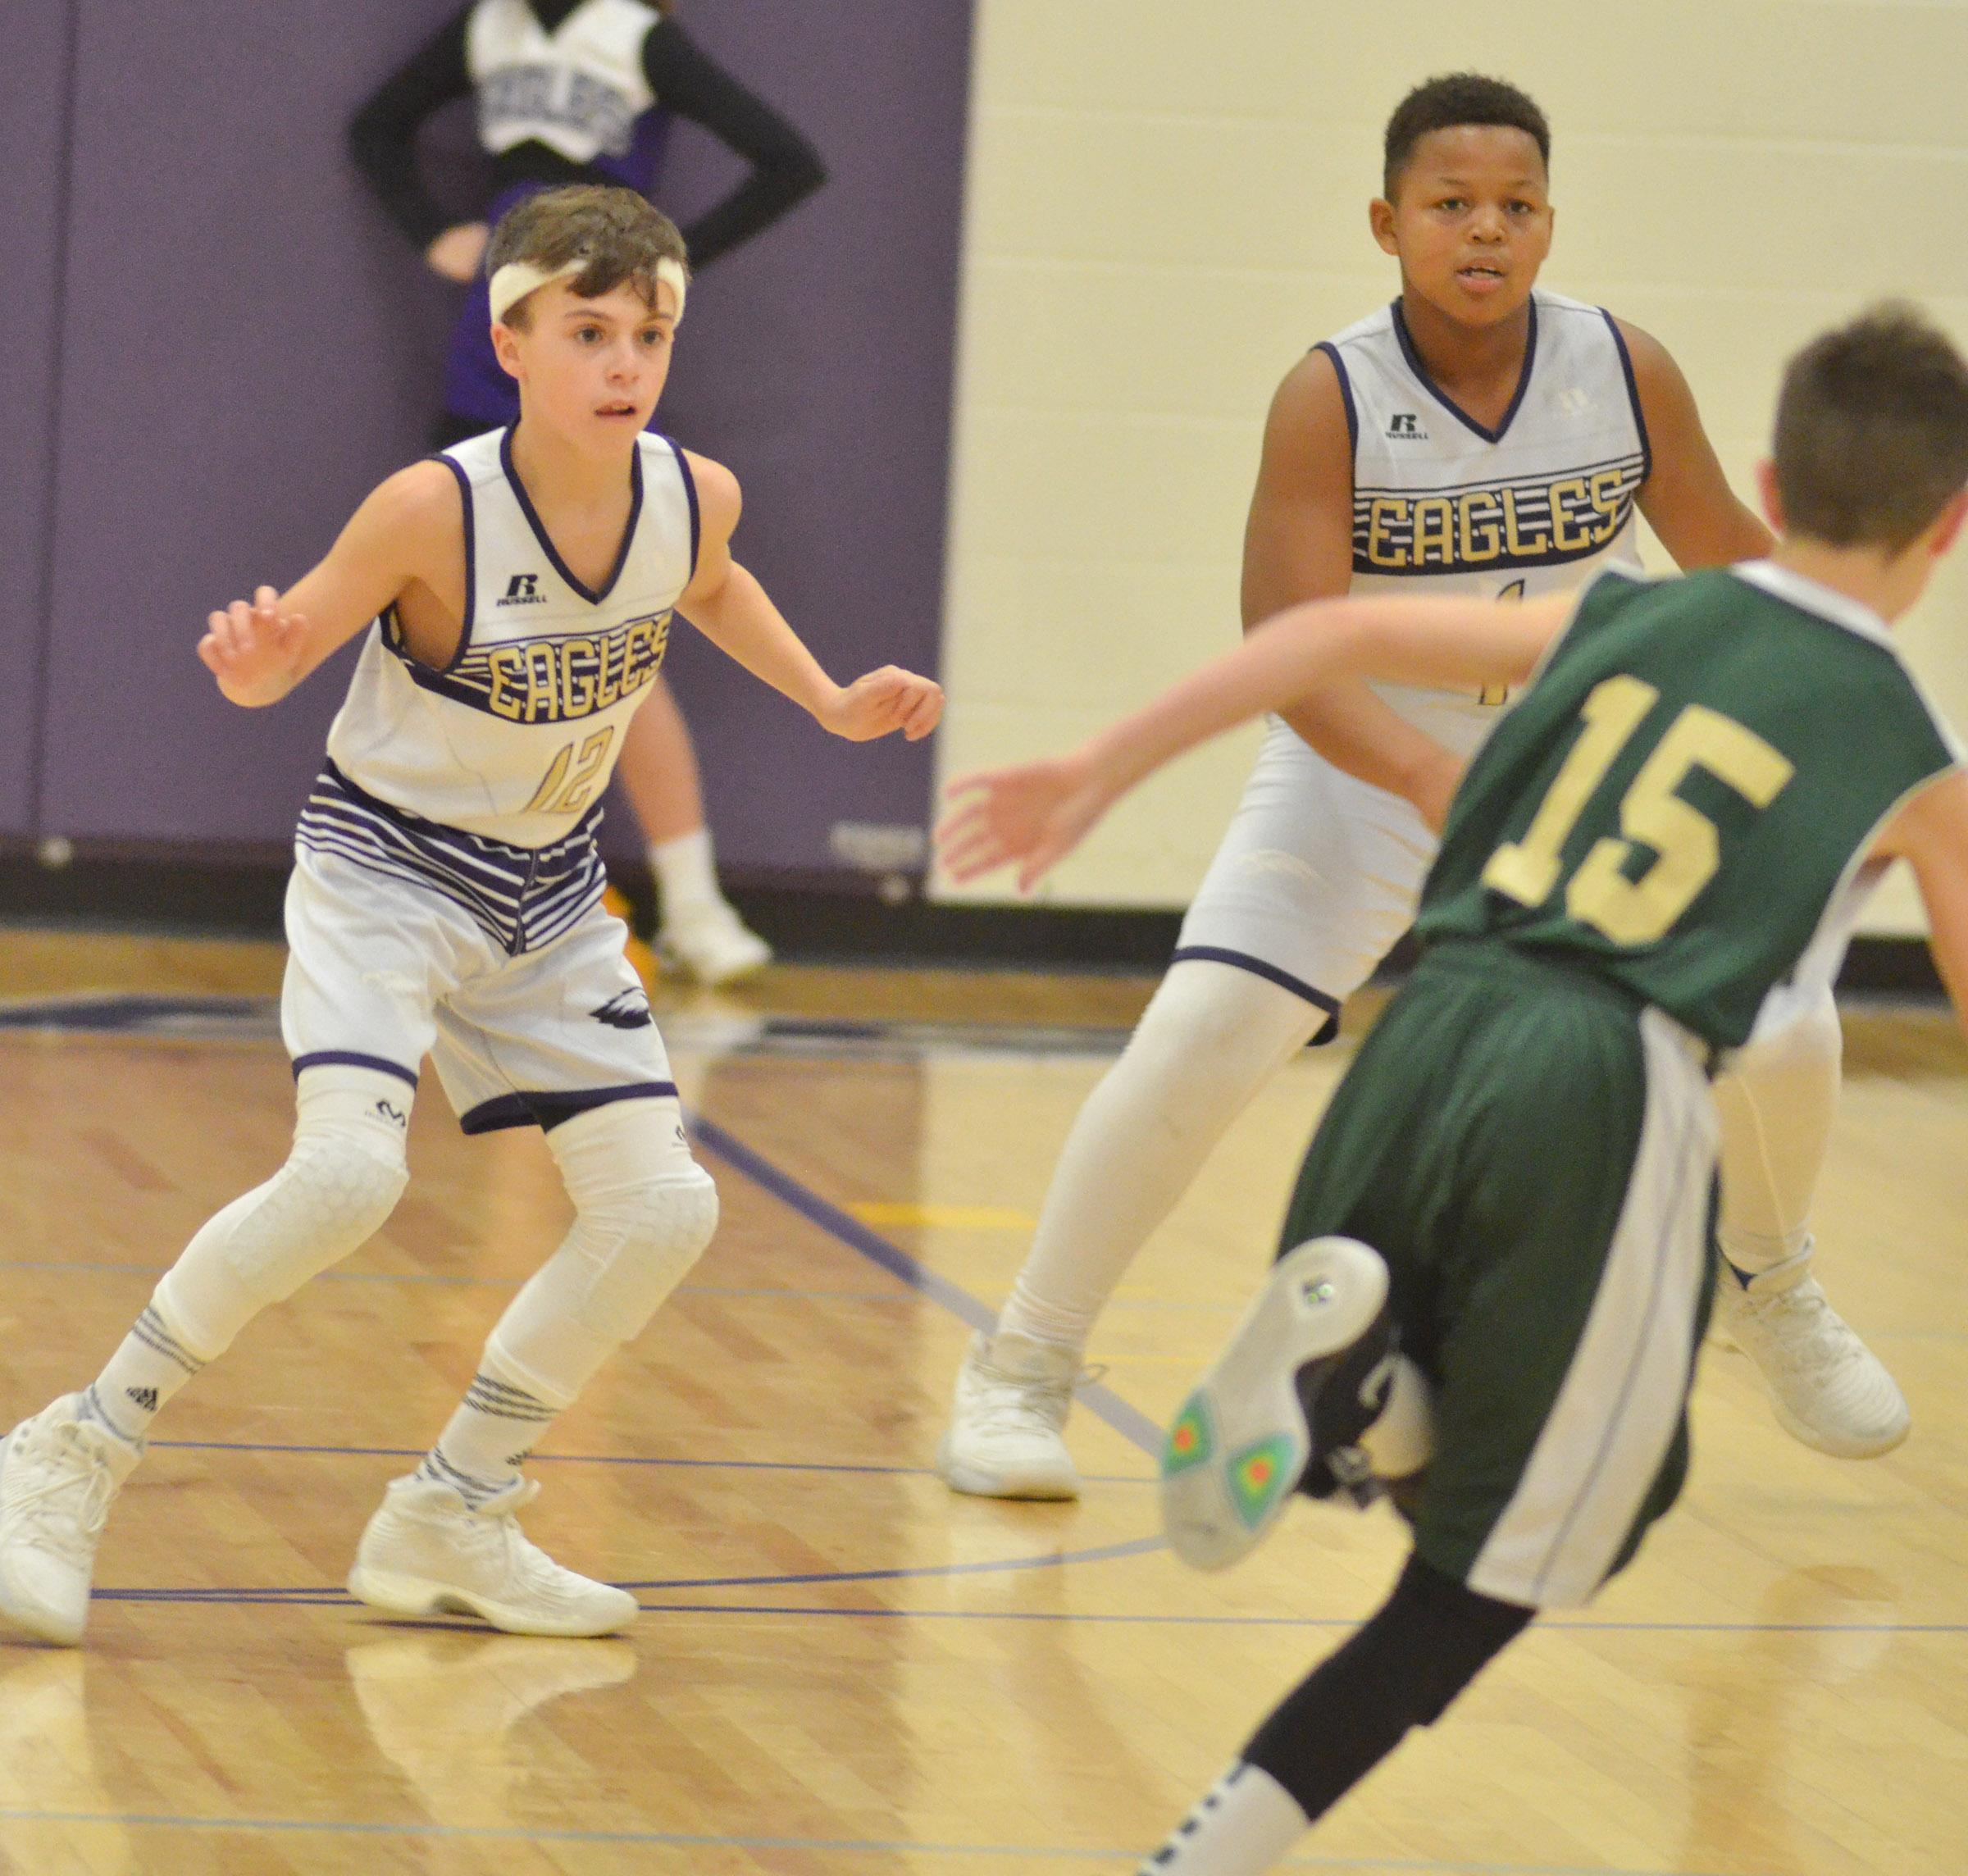 CMS seventh-graders Chase Hord, at left, and Keondre Weathers play defense.